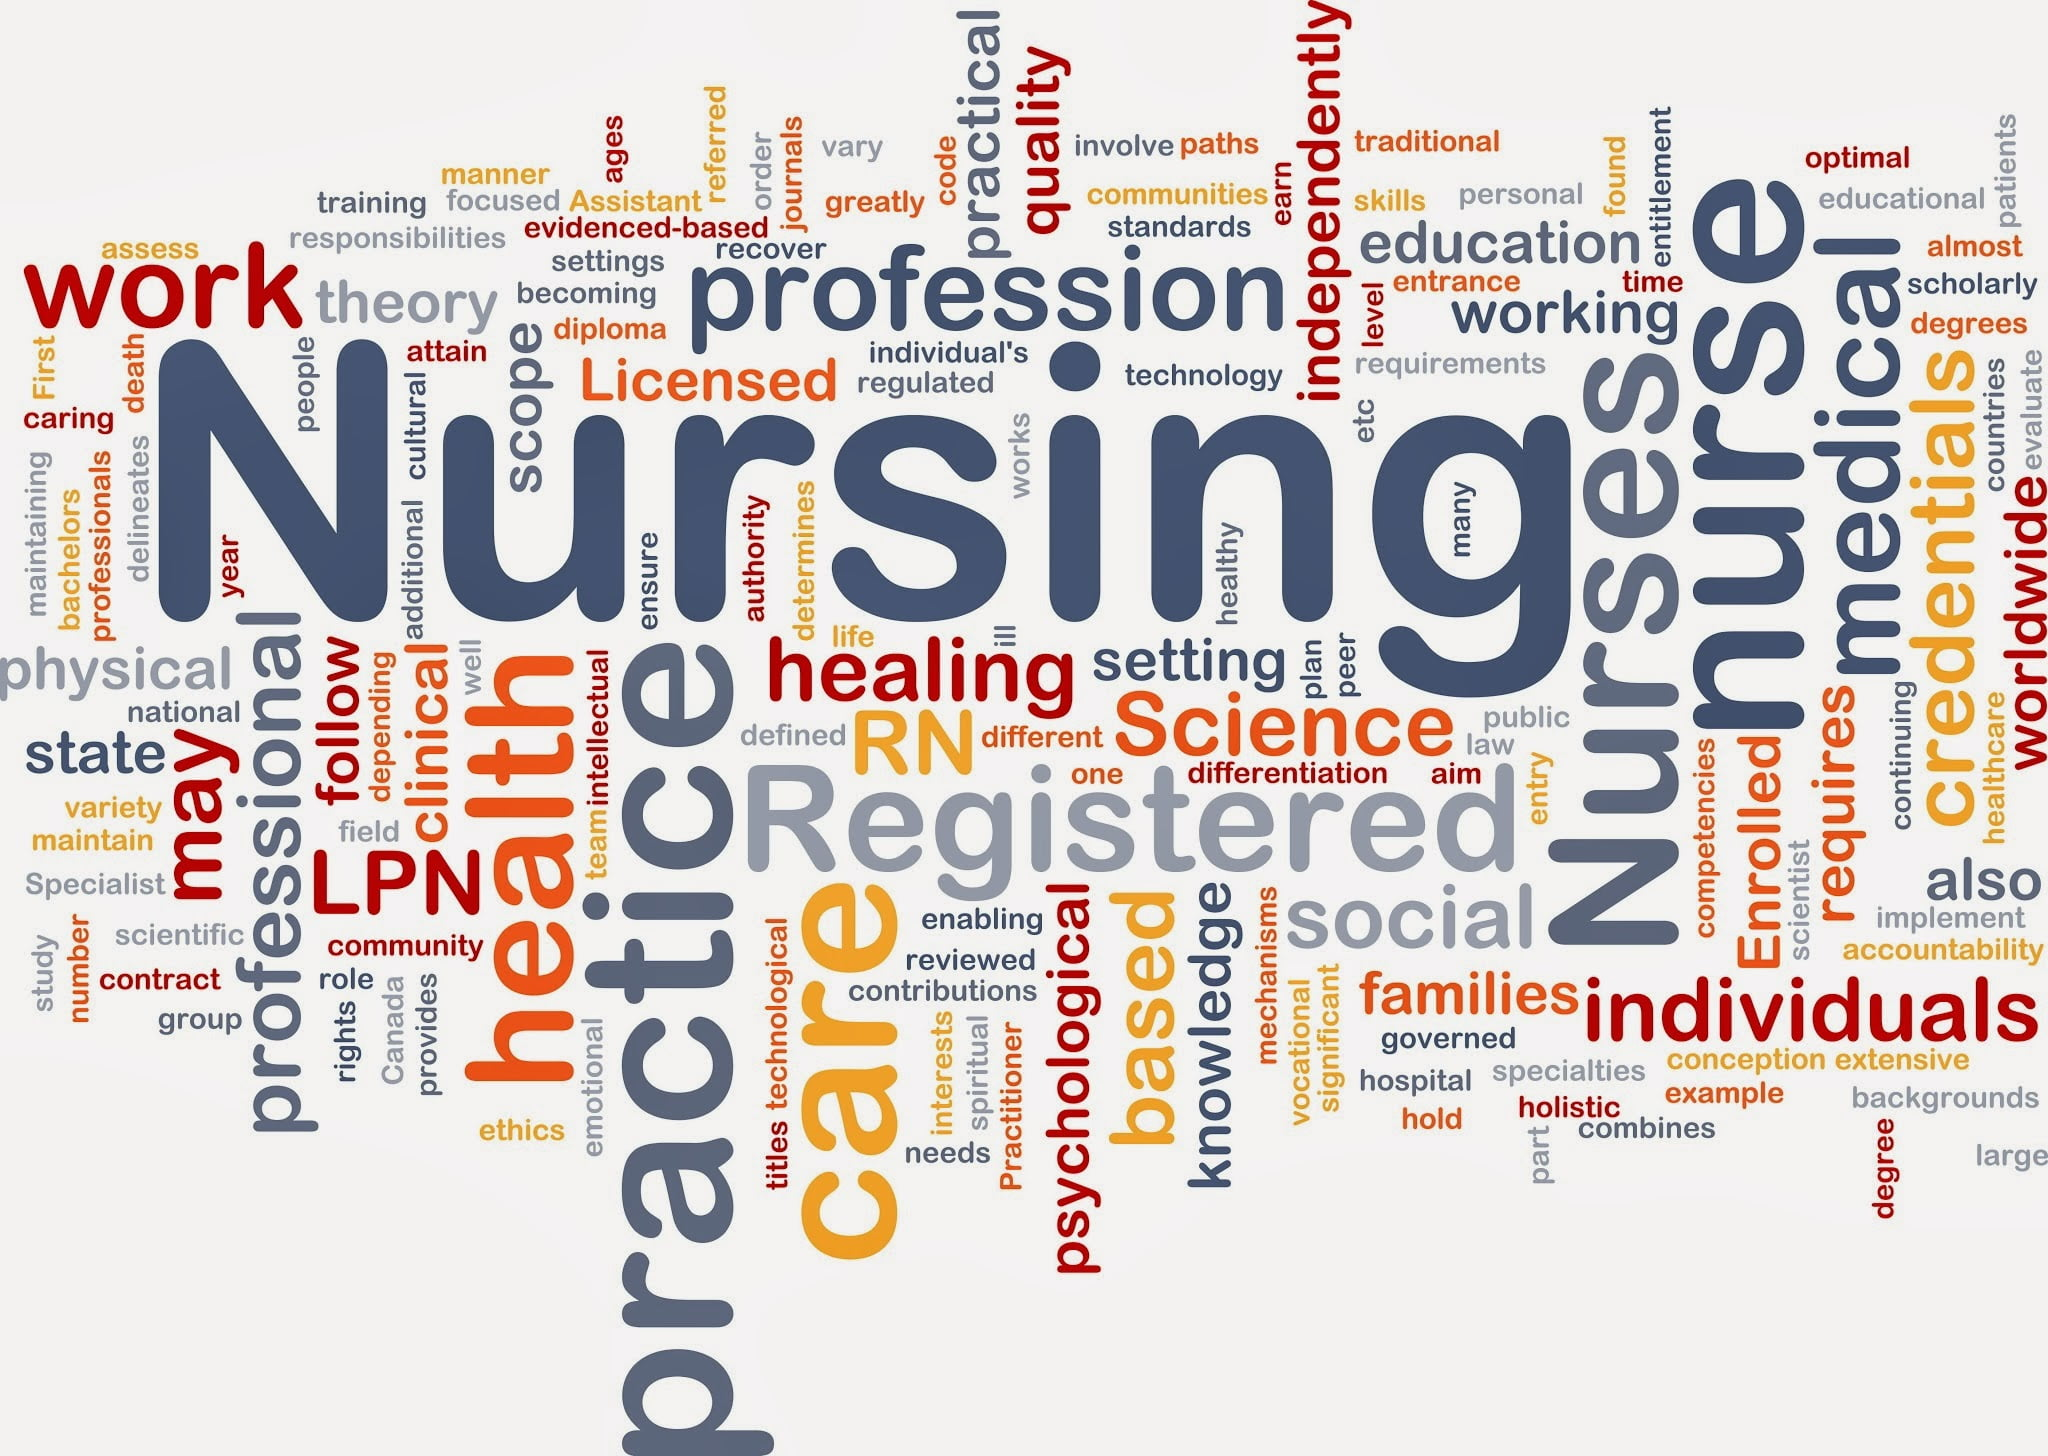 Nursing theories: 7 of the best nursing theories from popular theorists